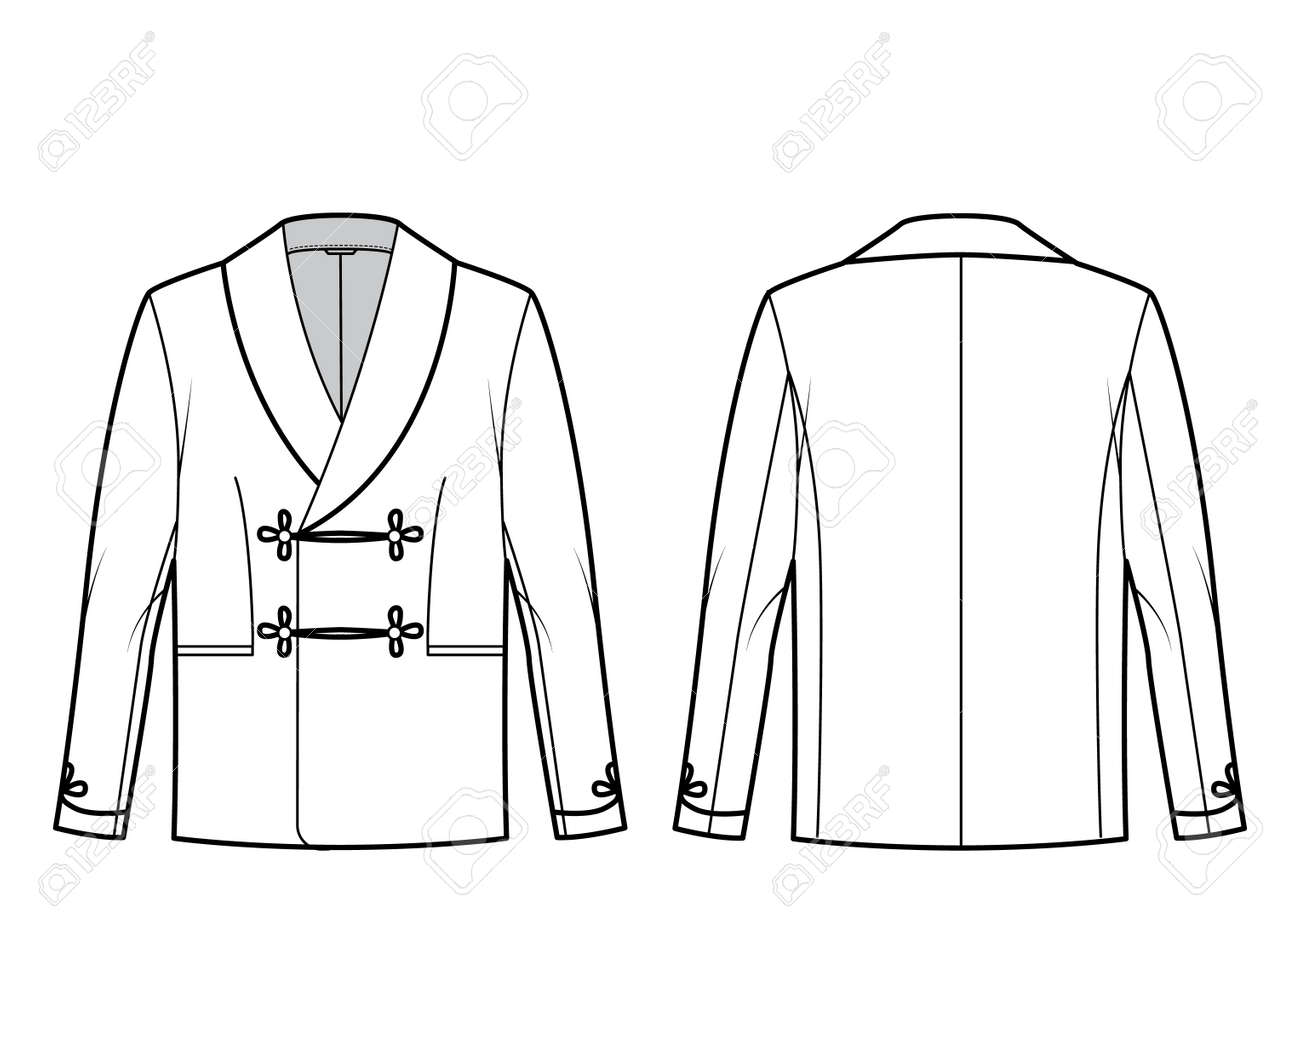 Smoking jacket technical fashion illustration with double breasted, long sleeves, shawl collar, besom pockets. Flat pajama top coat template front, back, white color style. Women men unisex CAD mockup - 166844717